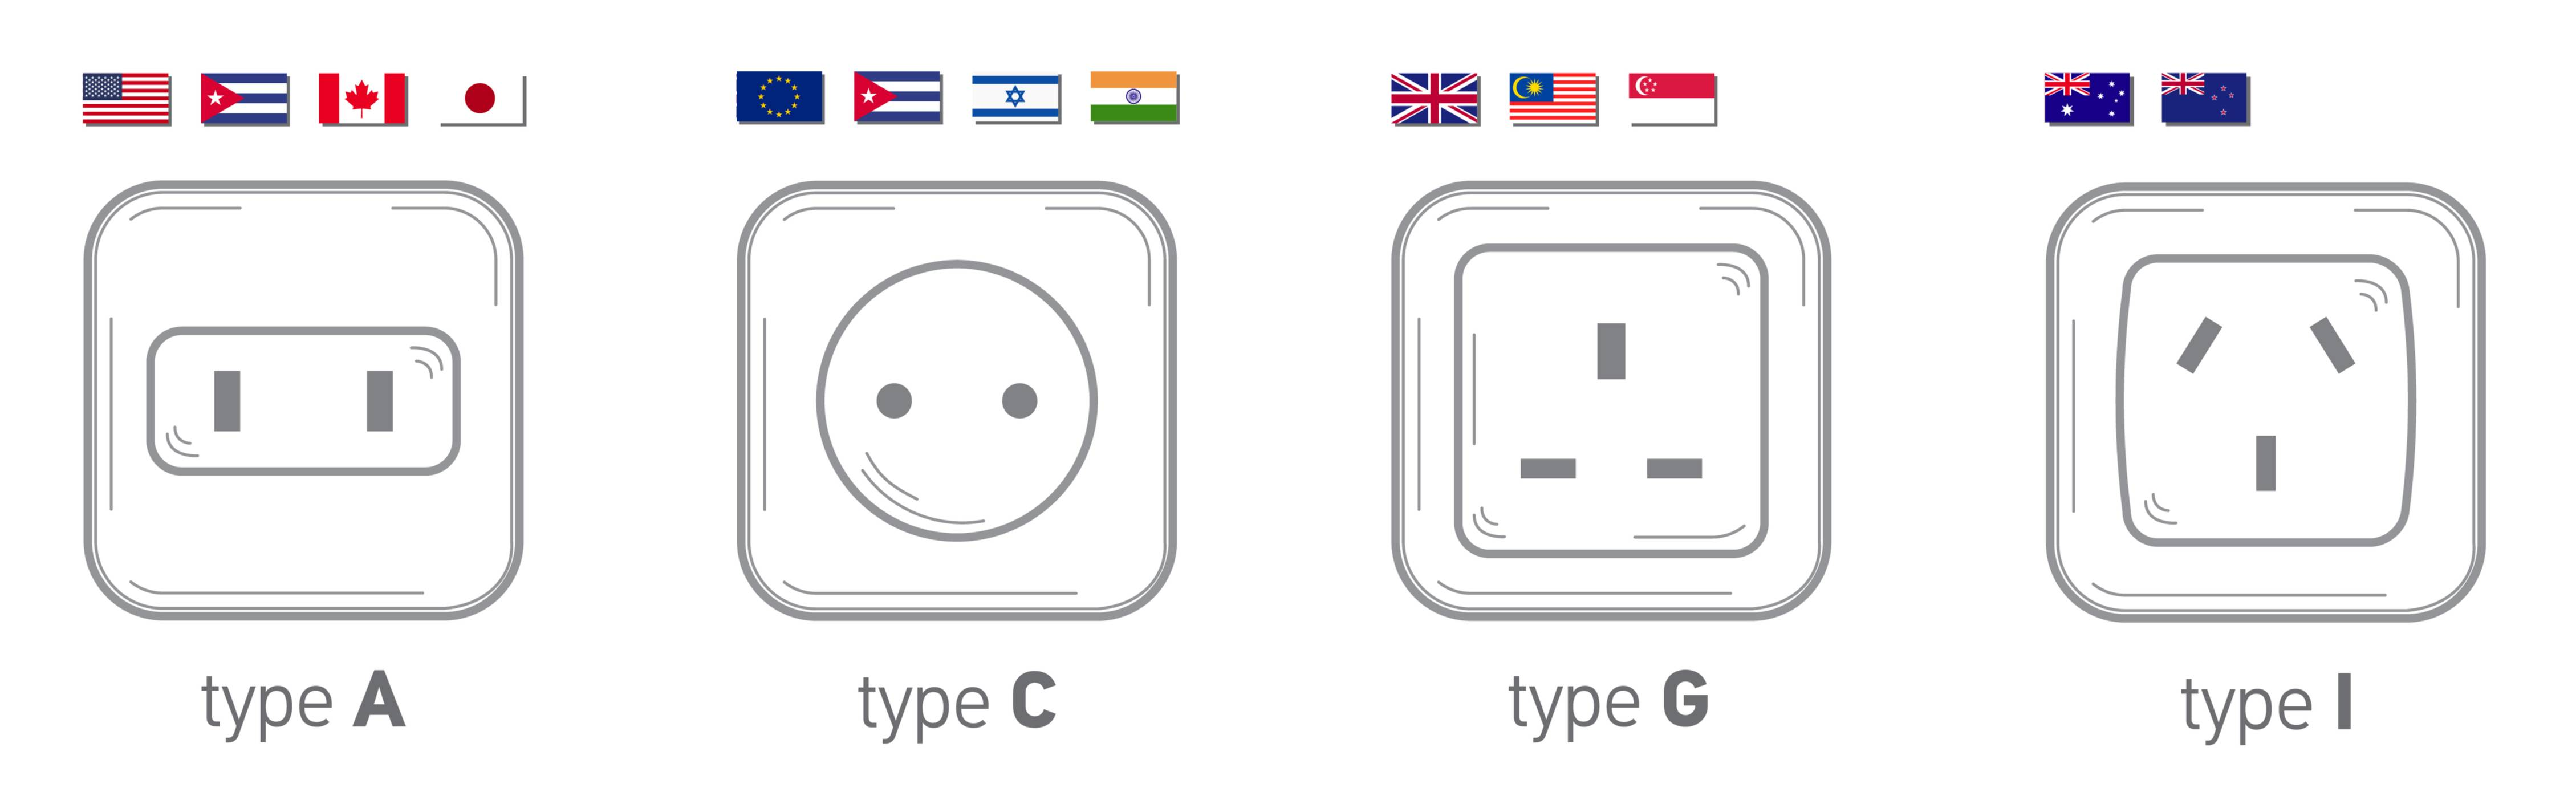 Outlets with related country flags